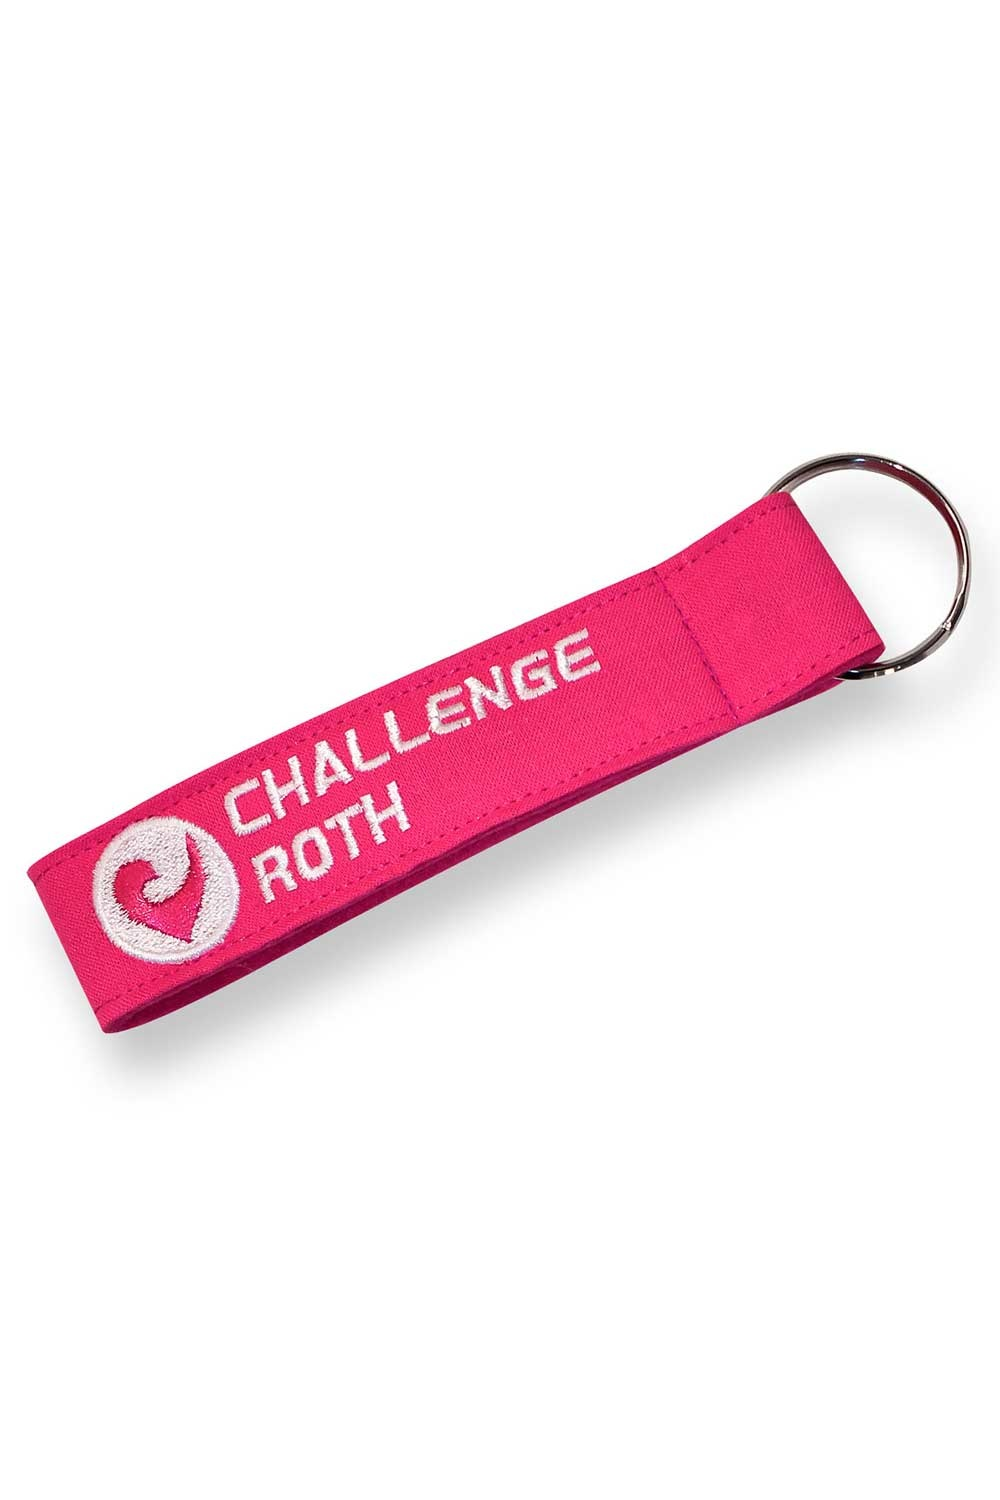 Challenge Key Chain in Pink-1